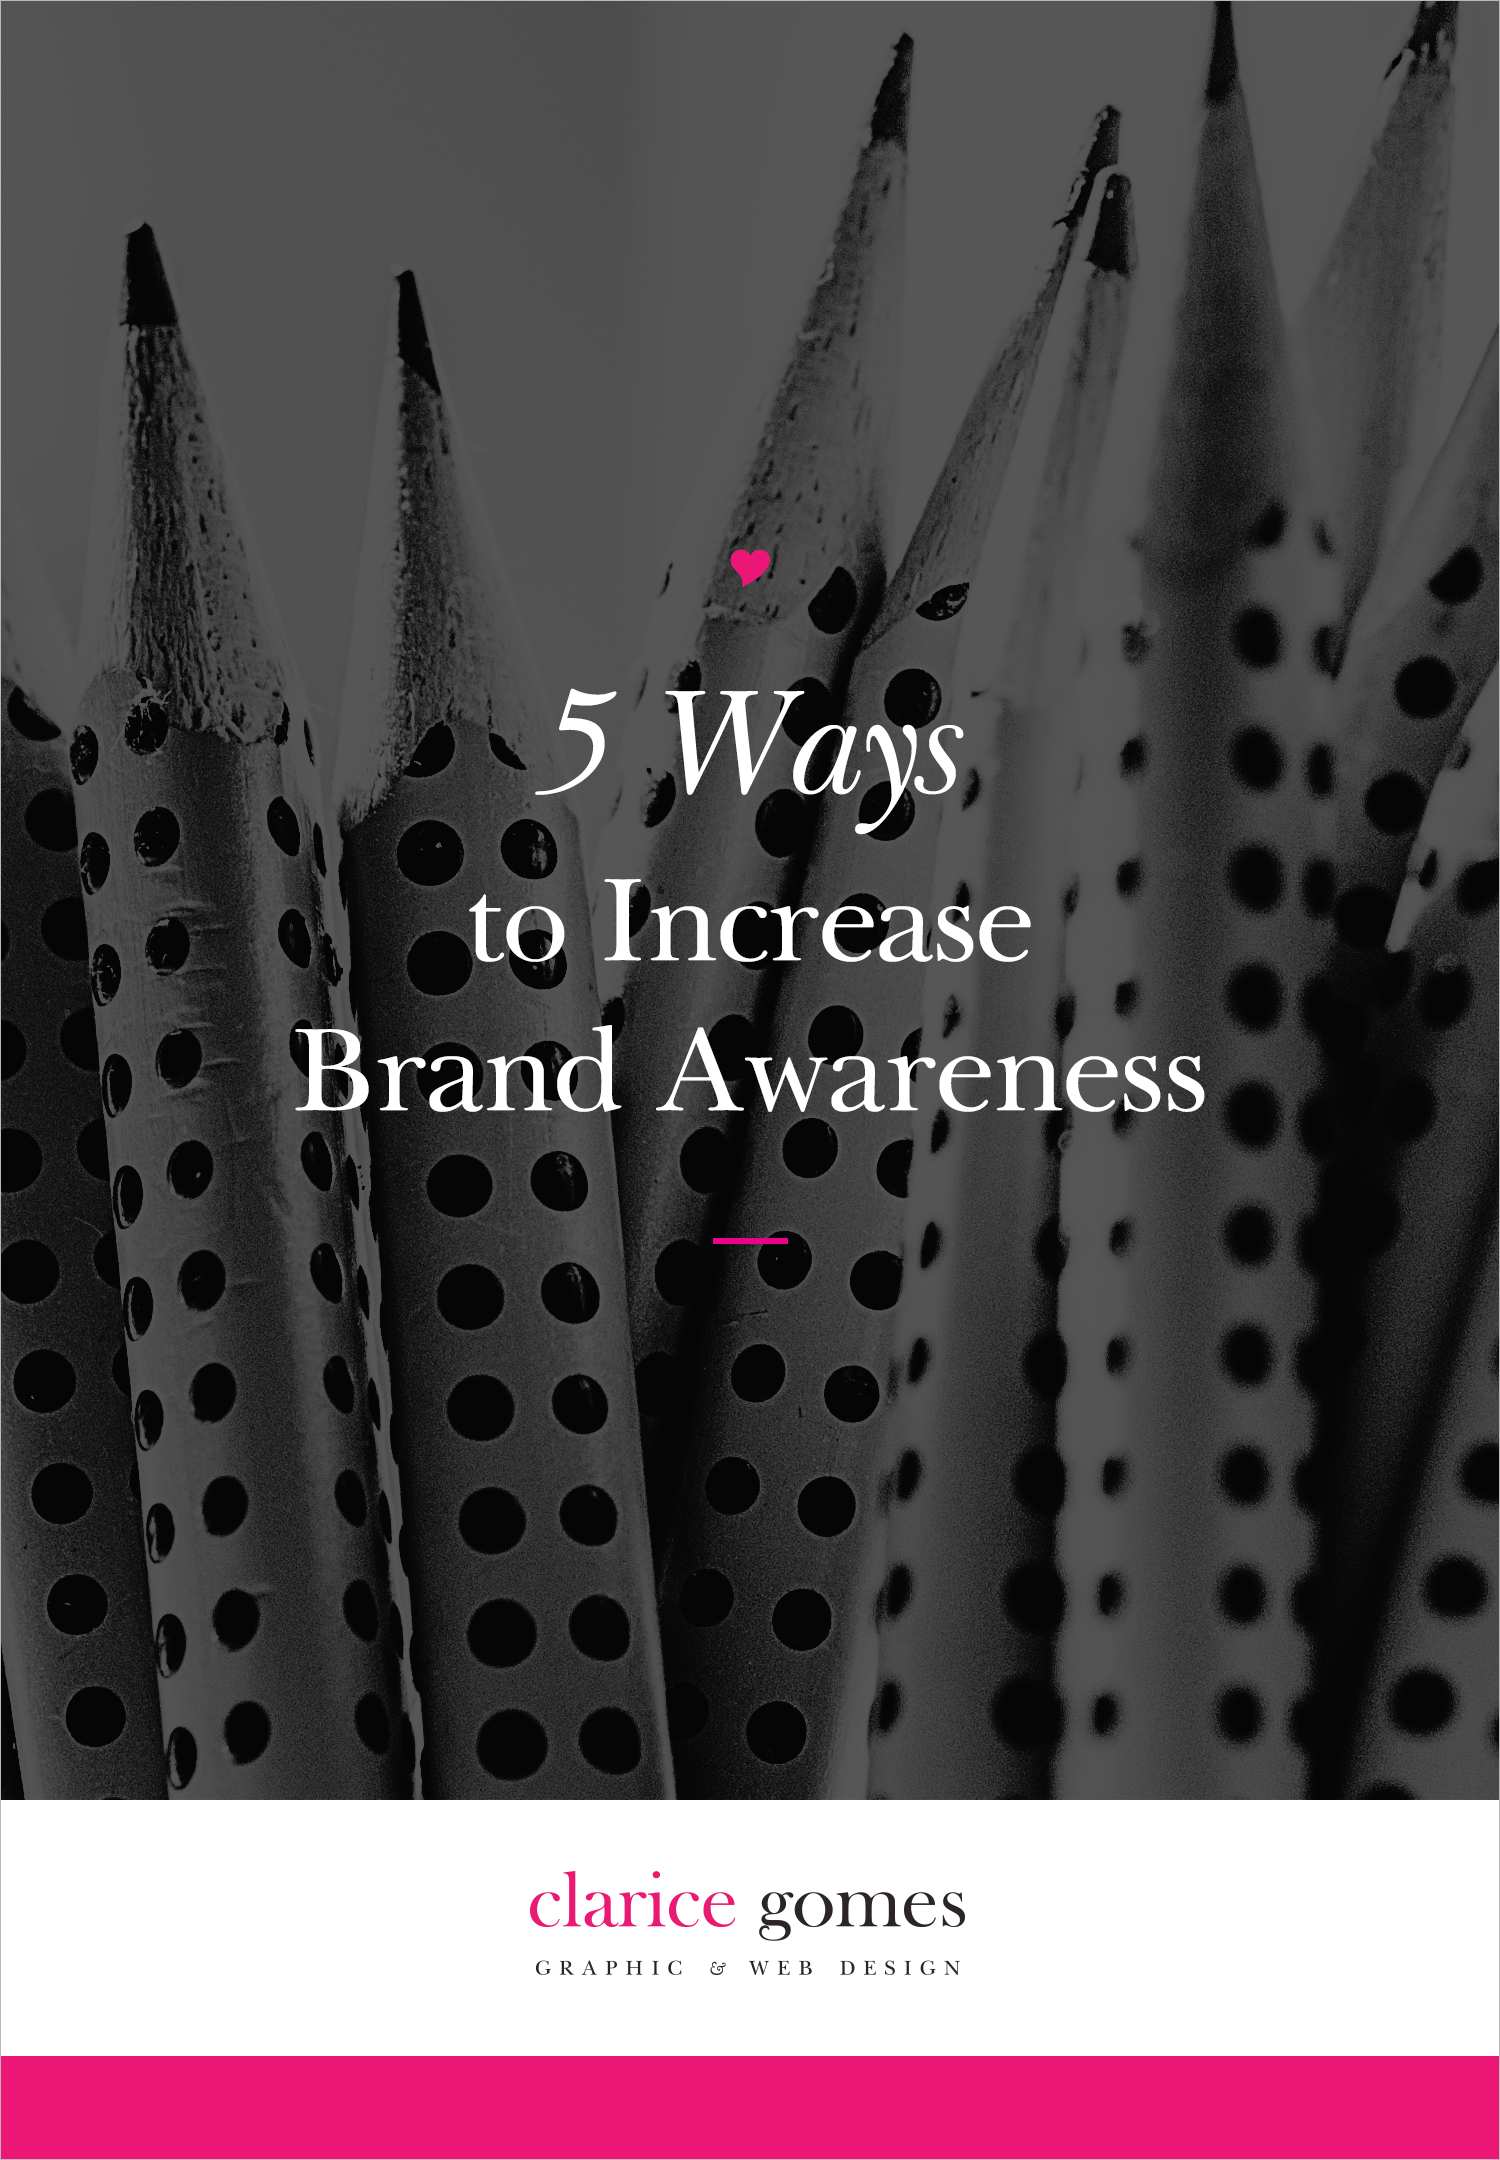 5 ways to increase brand awareness